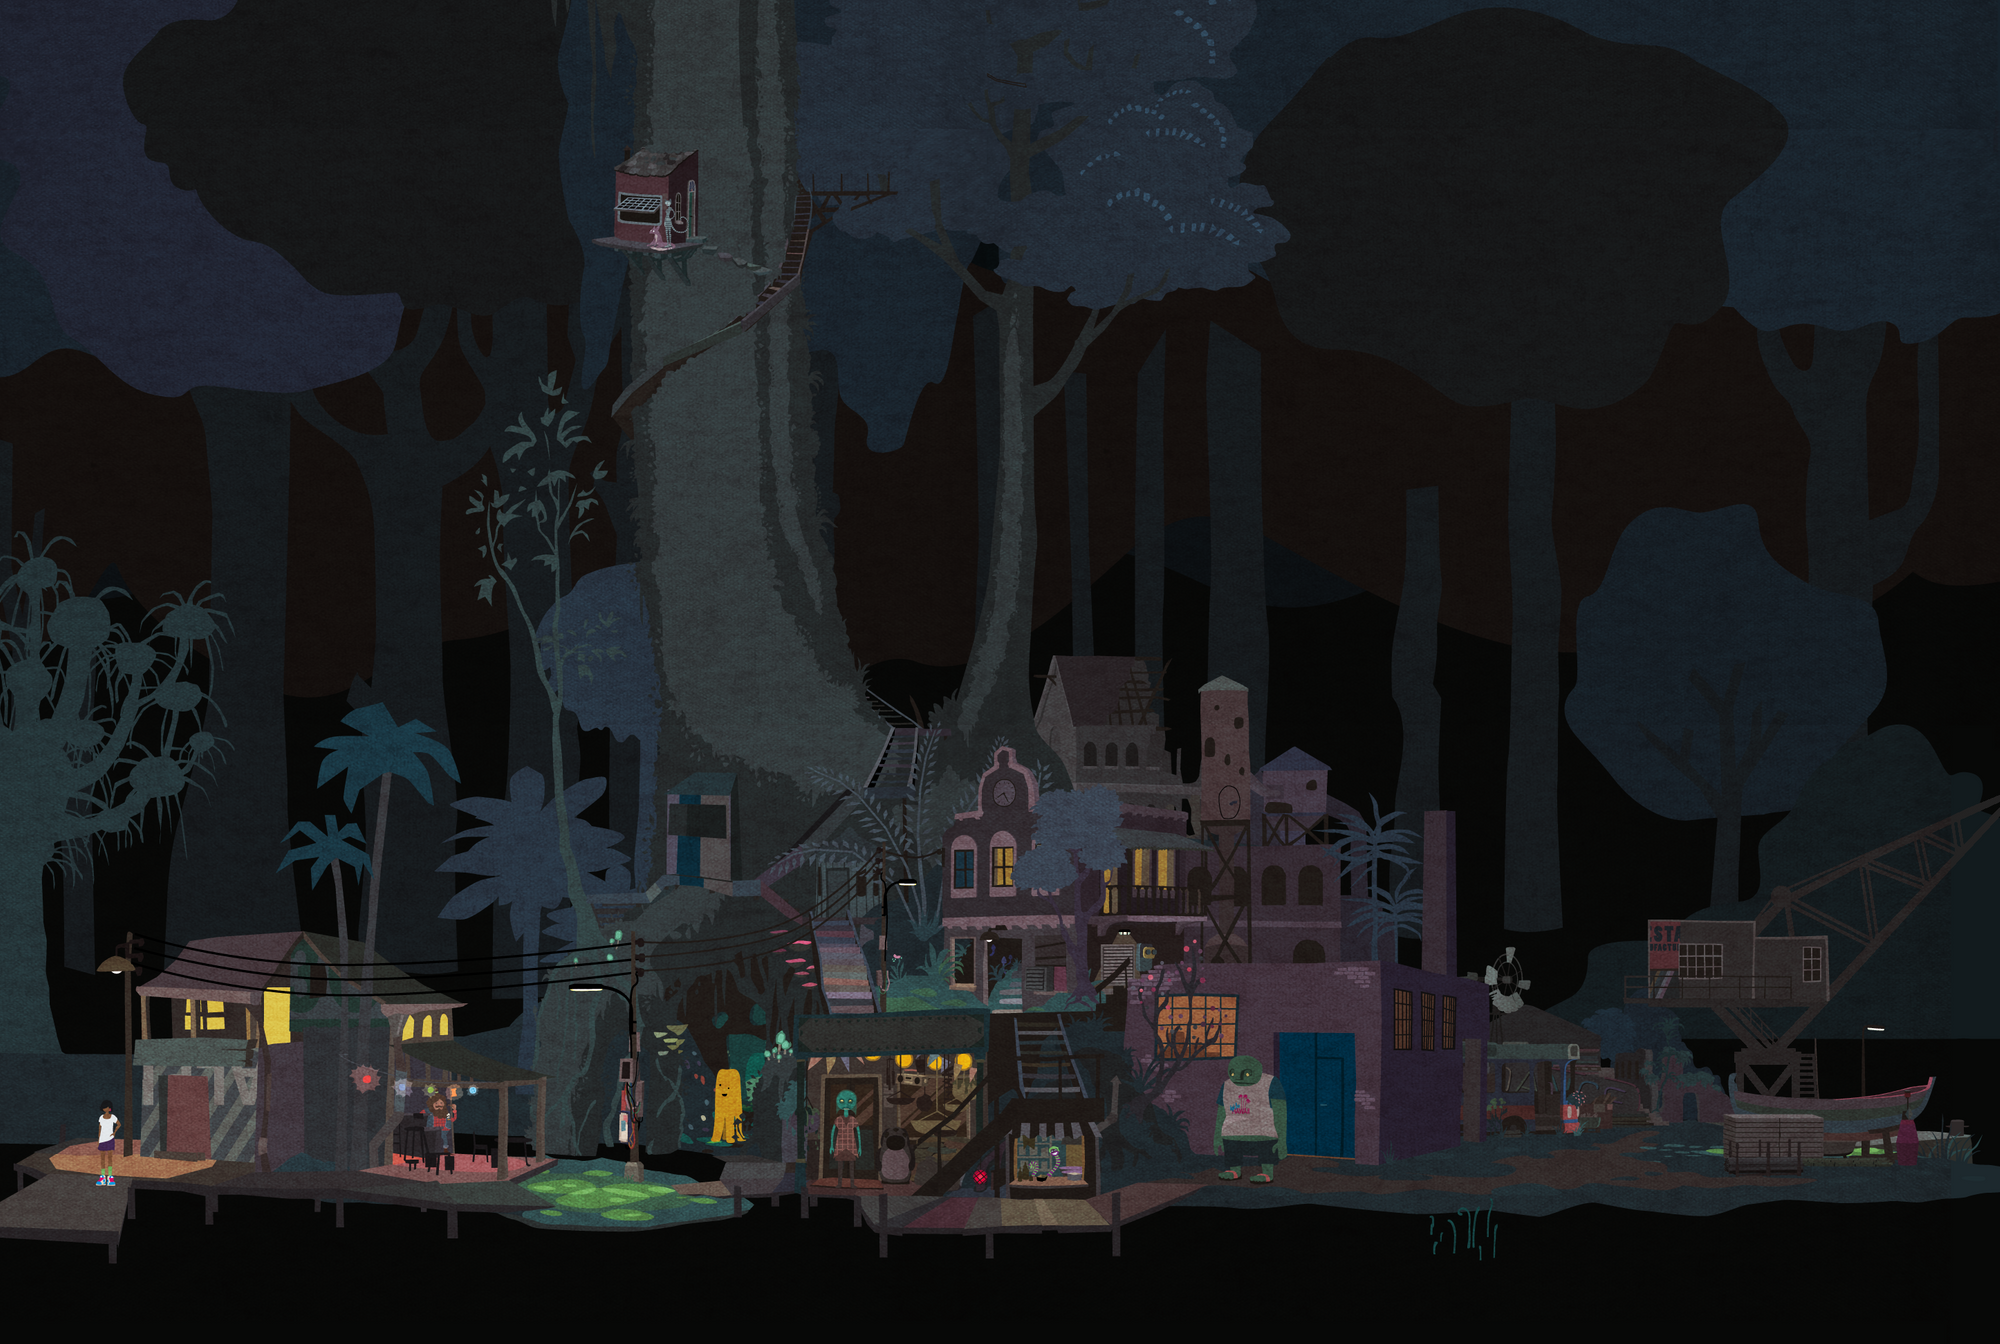 a early concept of Mutazione village in color, by night.